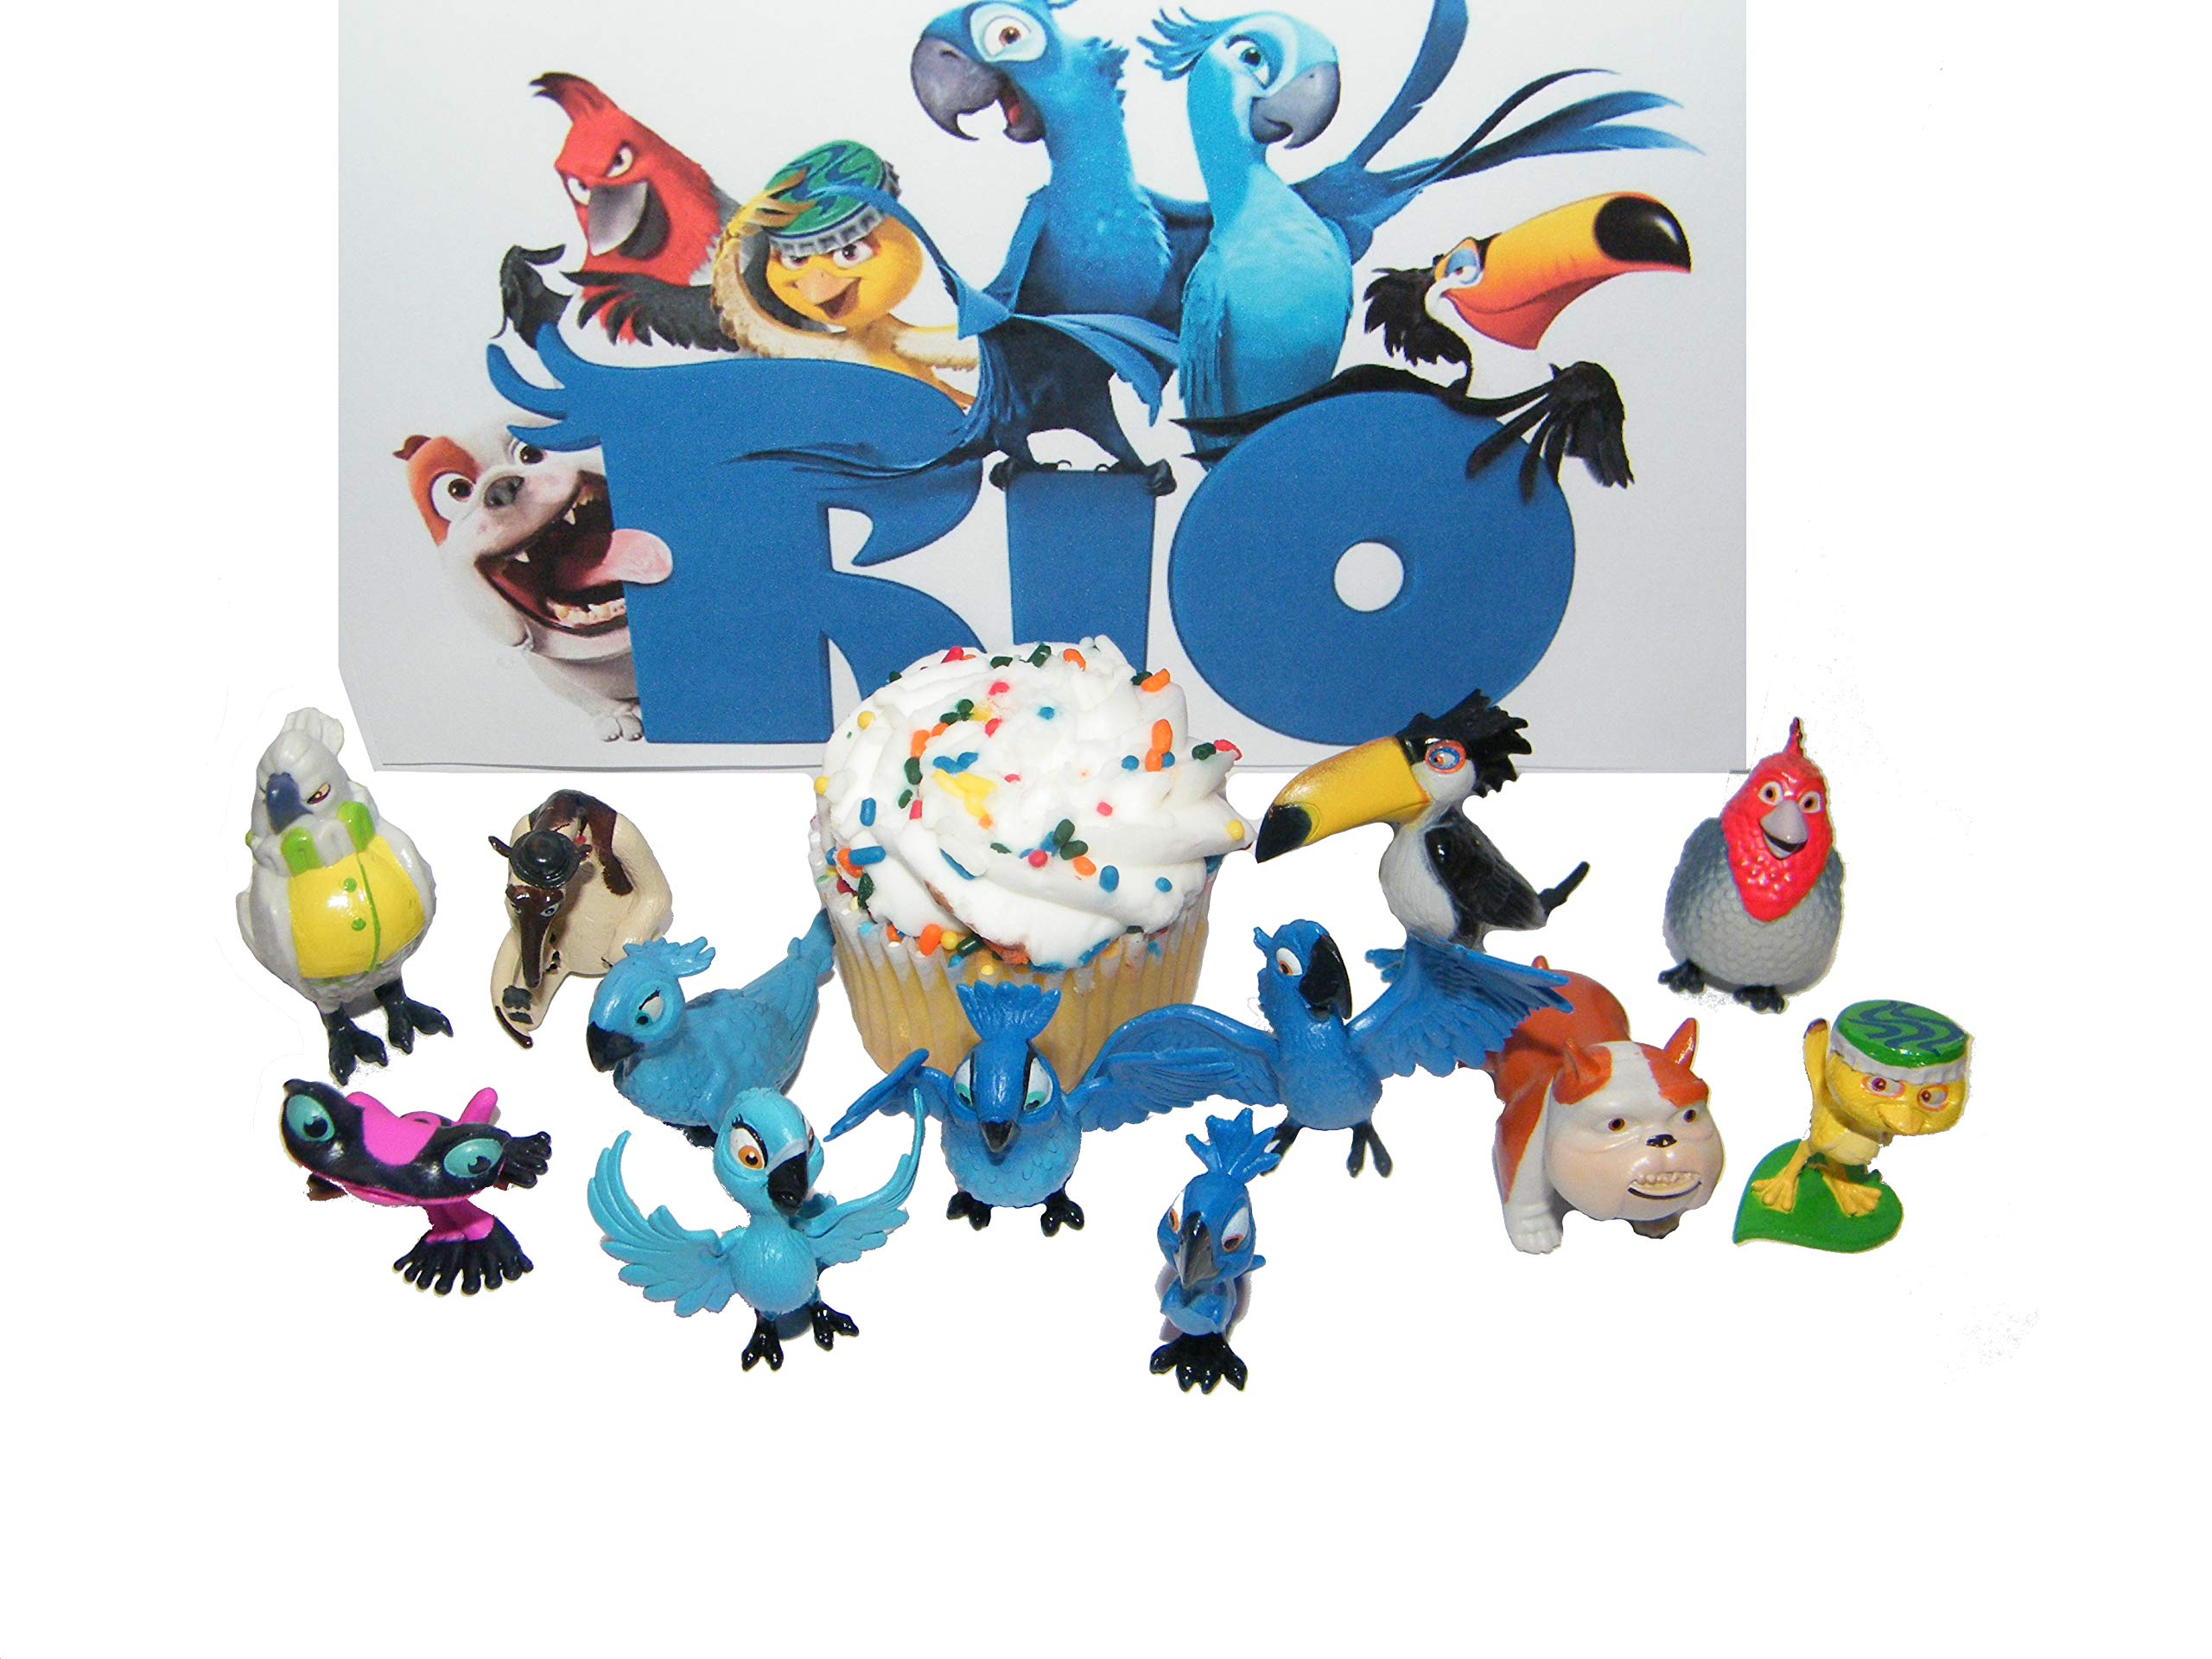 Rio Movie Set of 12 Bird Figure Cake Toppers / Cupcake Decorations Party Favors with Blu, Jewel, the 3 Kids, Luiz, Nigel and New Characters Gabi, Charlie and More! by Rio